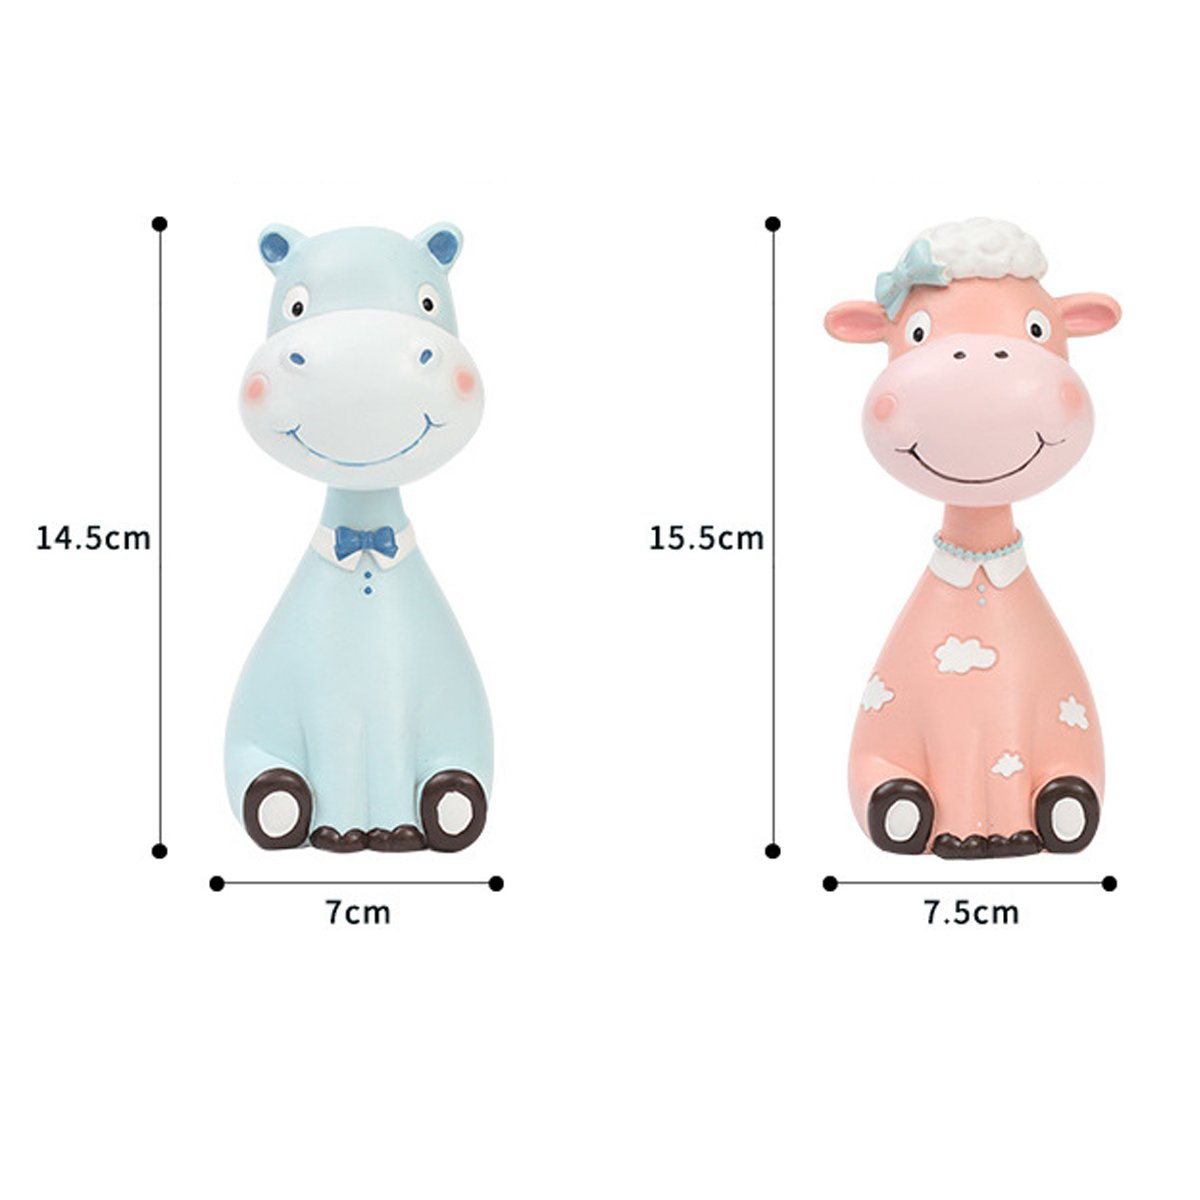 Gift for Christmas or Birthday to Your Loved Ones Adorable Animals Zoo Eyeglass Spectacle in 2 pcs/Eyewear Holder by NaNa (Image #2)